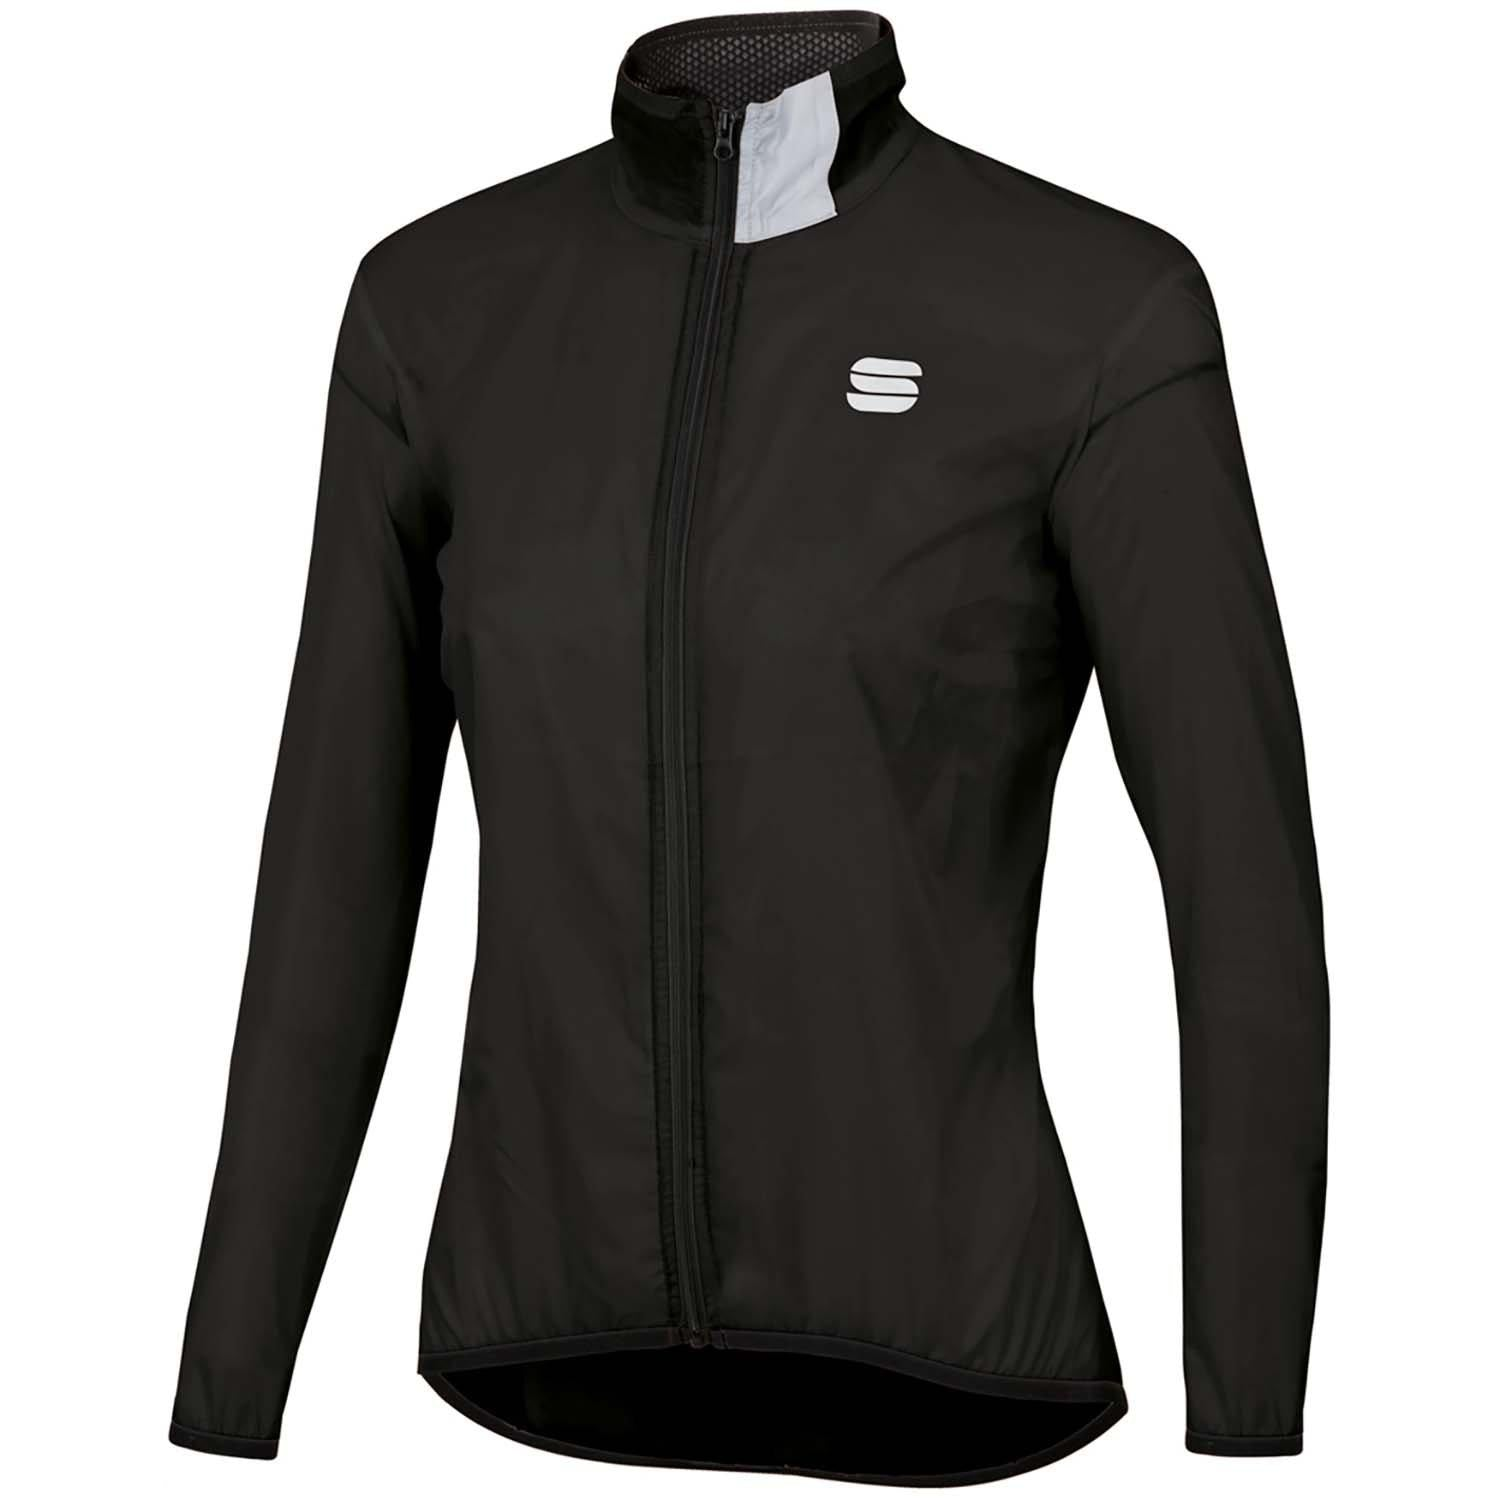 Sportful-Sportful Hot Pack Easylight Women's Jacket--saddleback-elite-performance-cycling